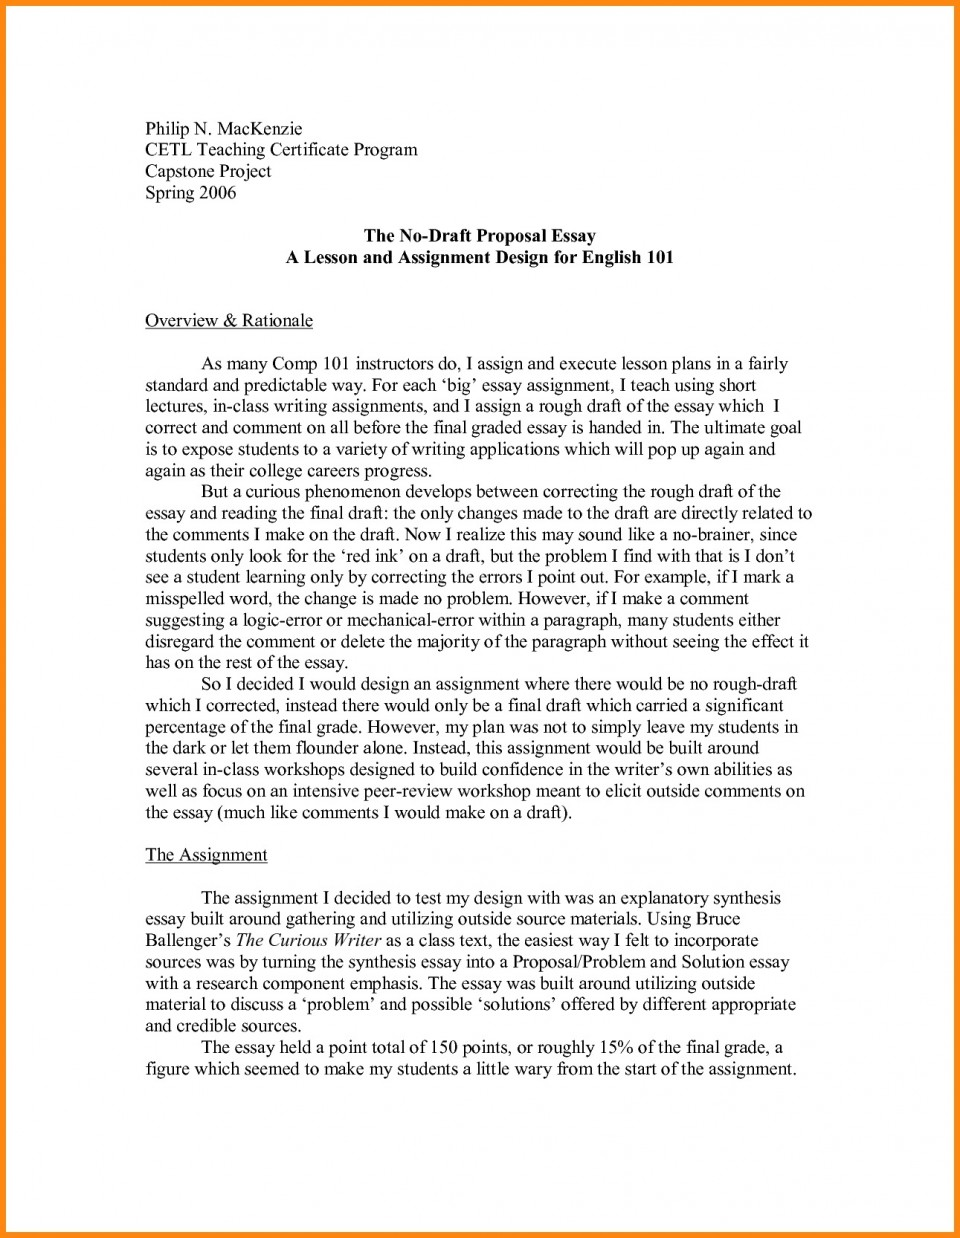 019 Research Paper Papers Topics For Finance Topic Proposal Example Essay At Phenomenal High School Students About Elementary Education Hot In Computer Science 960